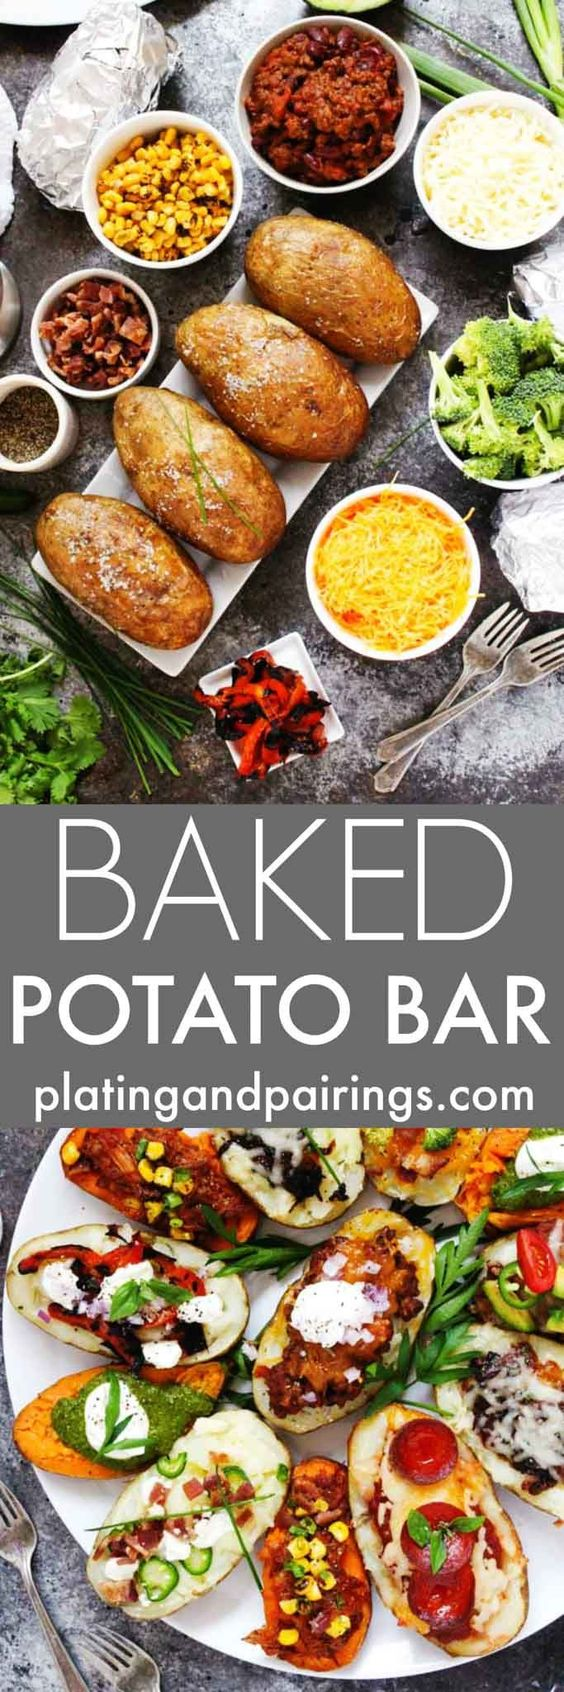 Grilled baked potatoes, Baked potato bar and Baked potatoes on ...